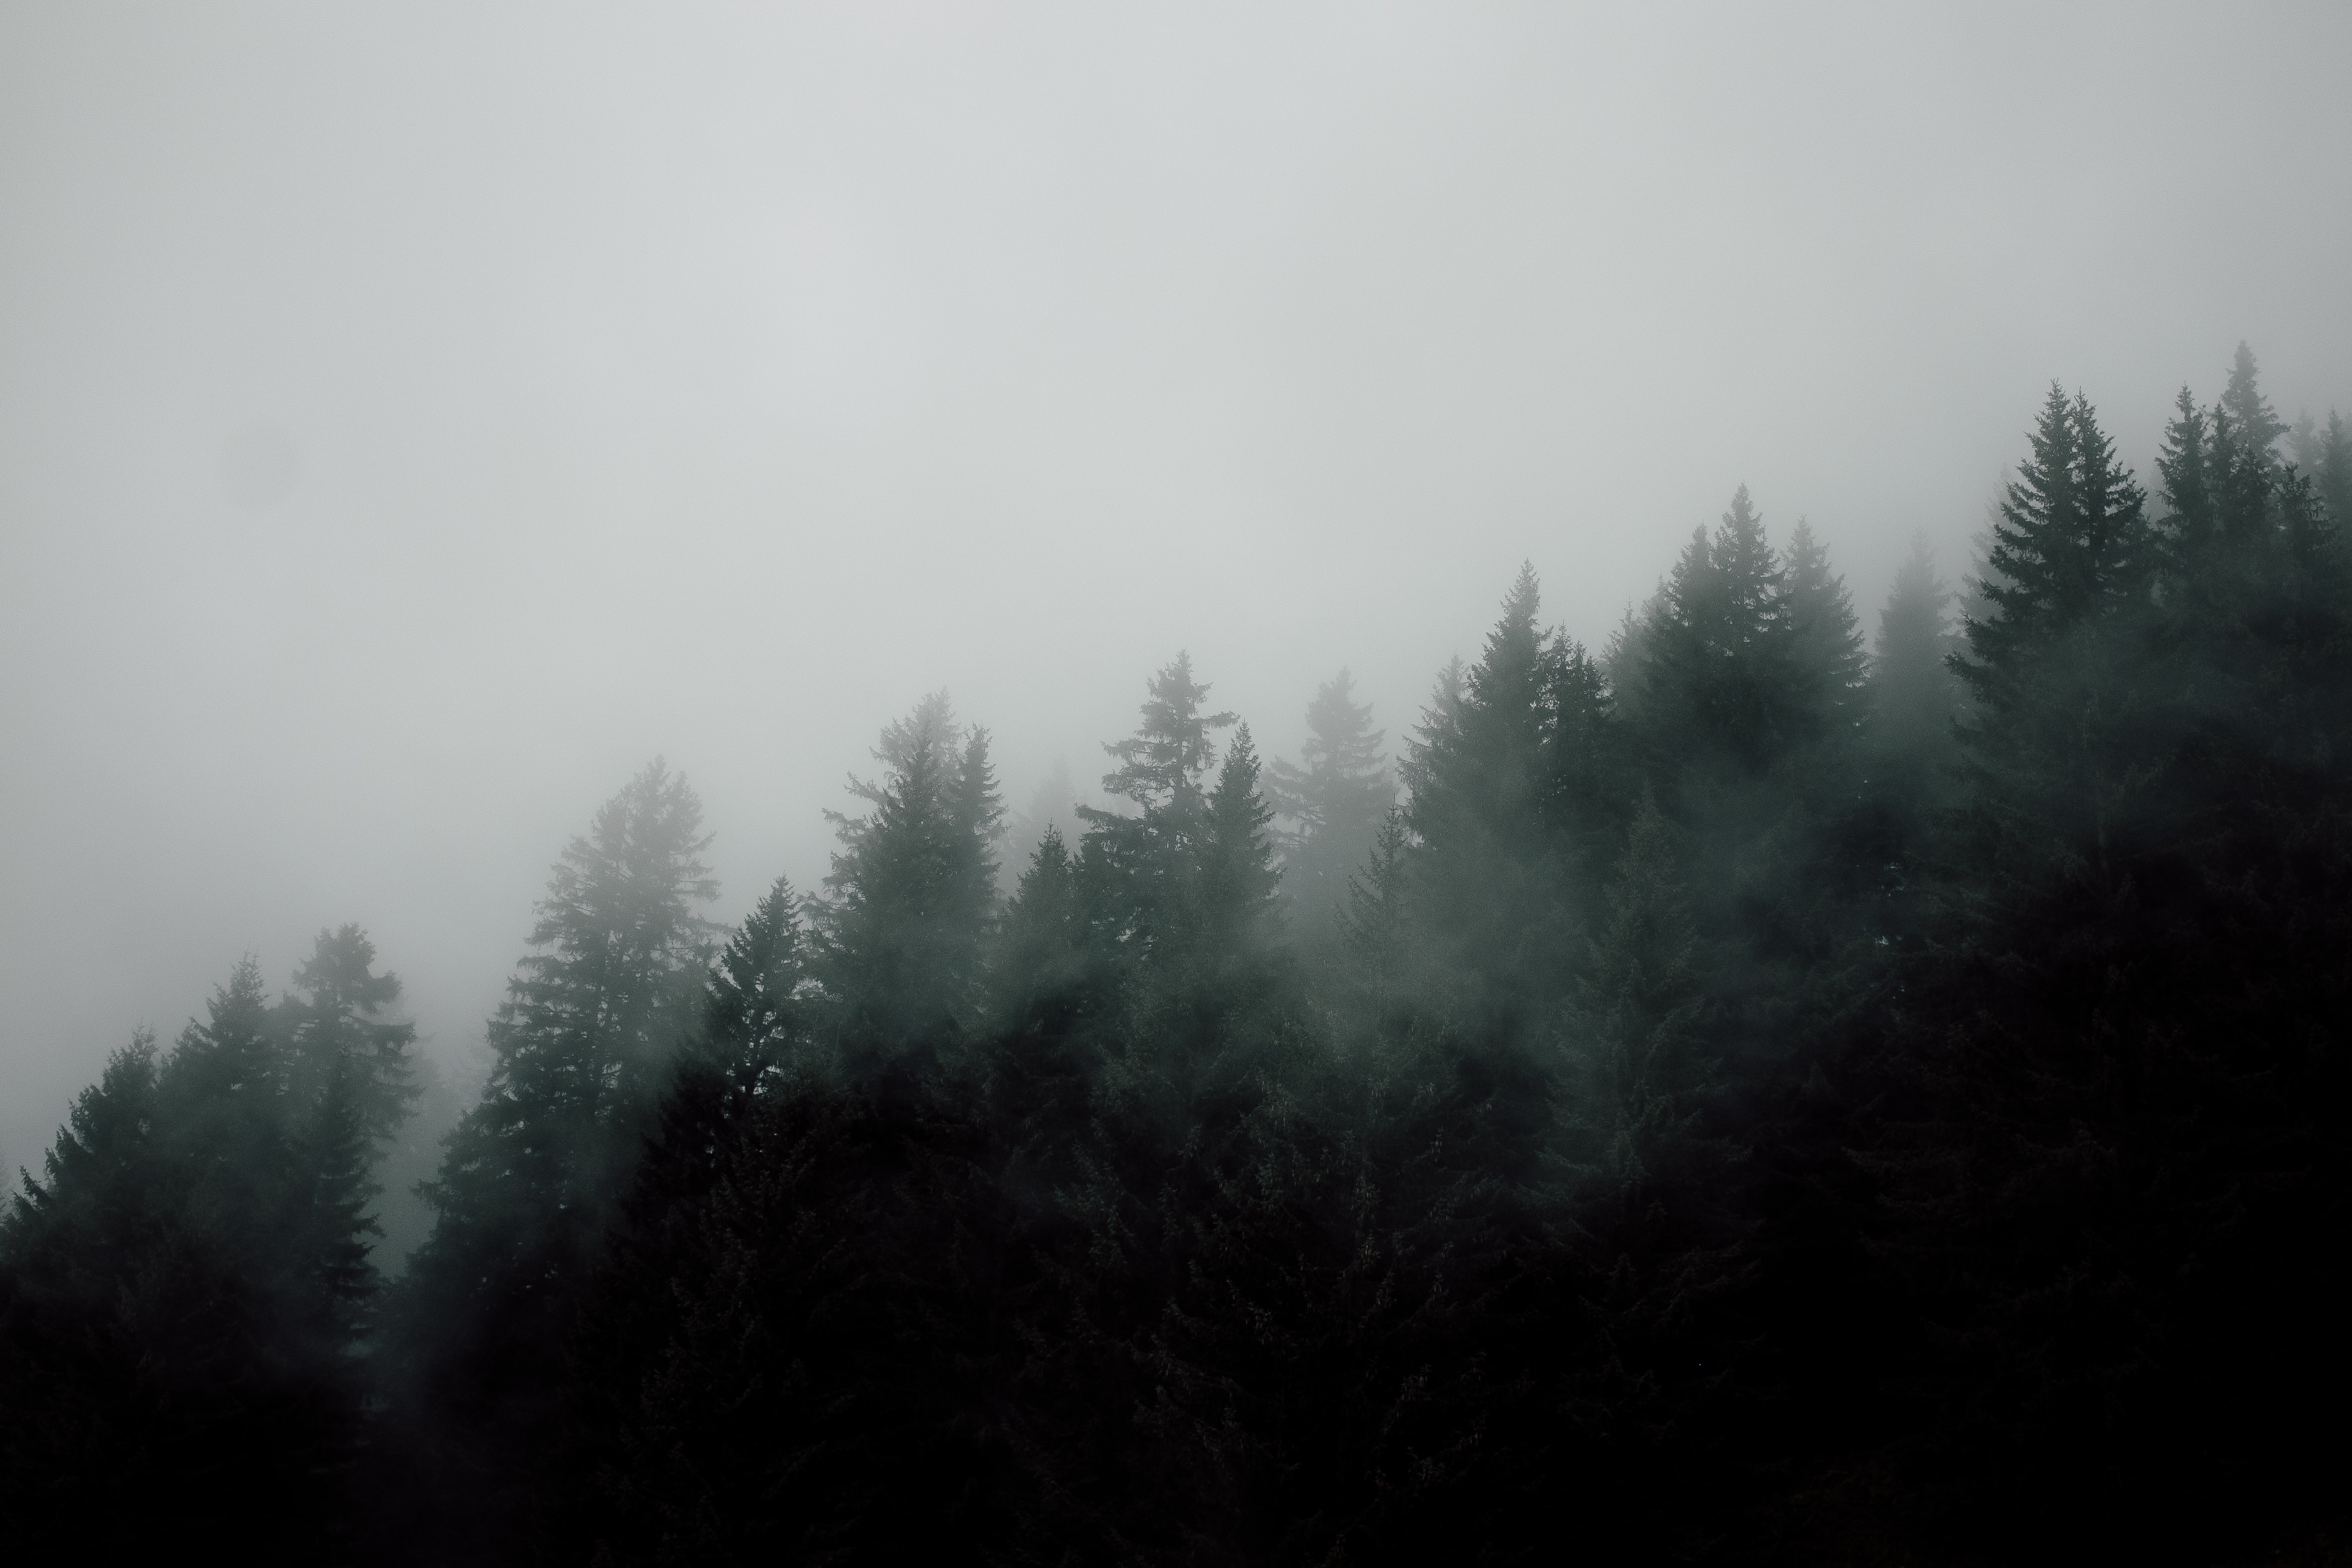 fog above forest during daytime